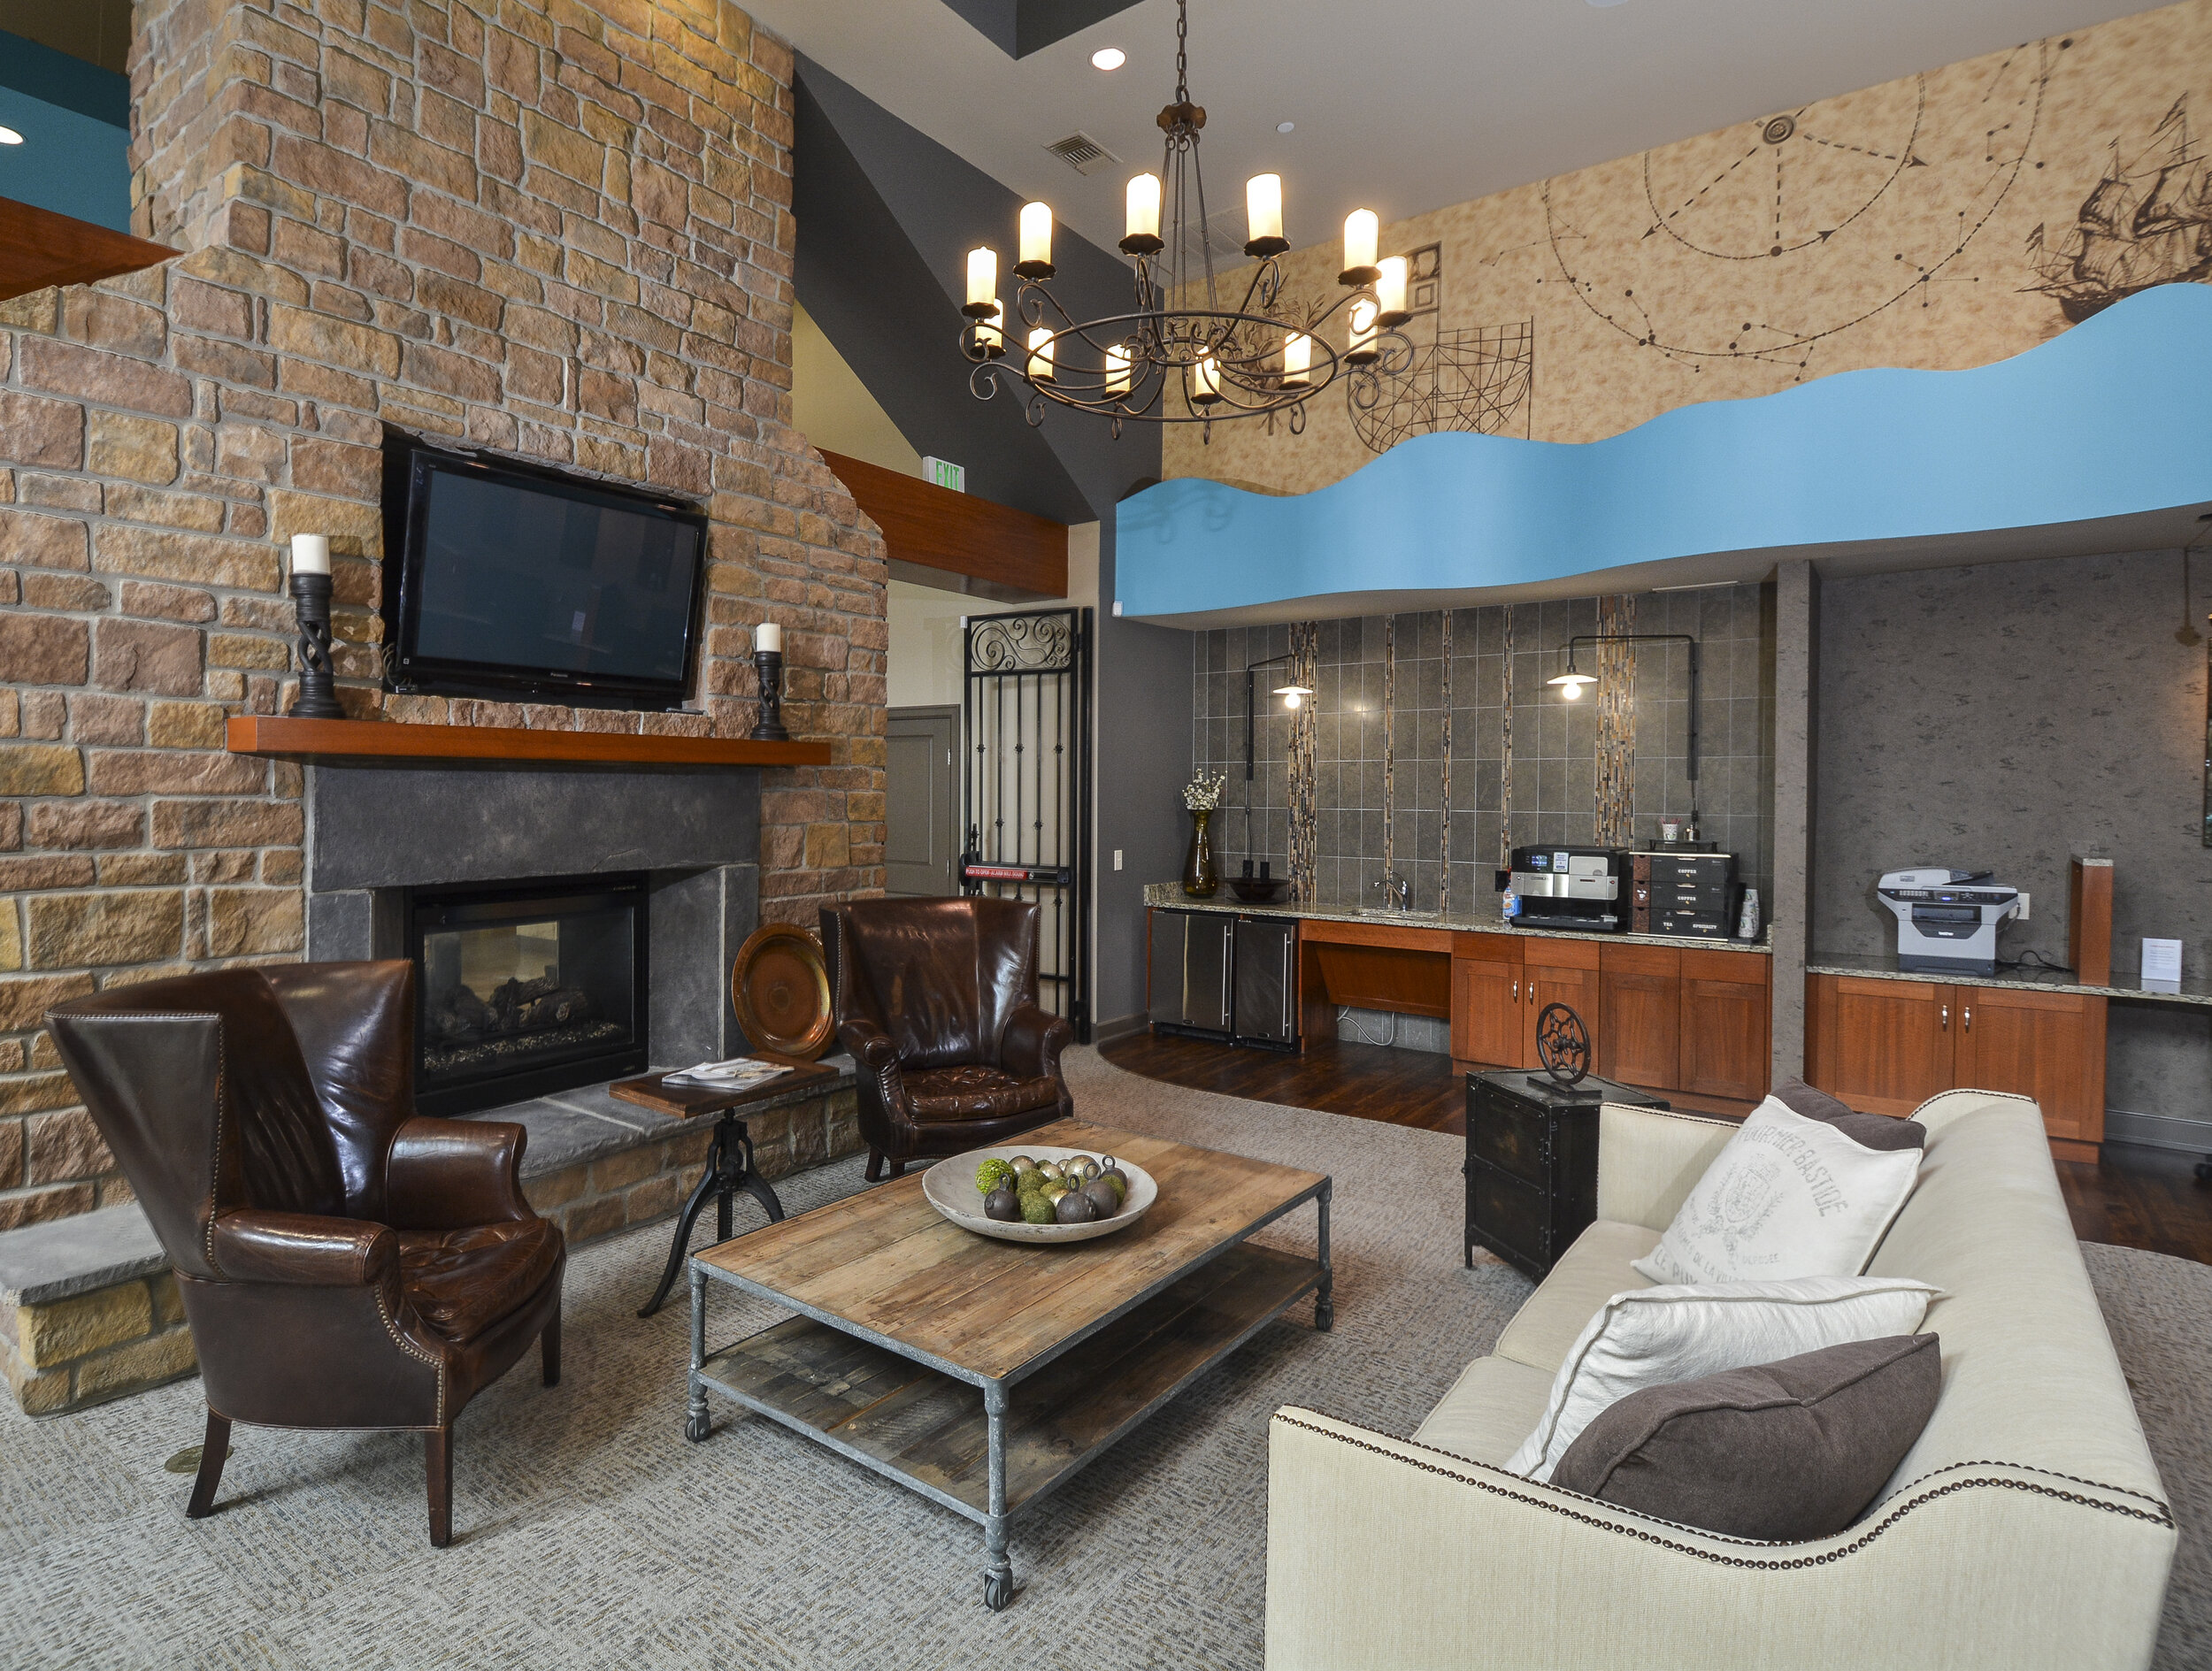 17 Cozy Clubhouse Fireplace With TV & Coffee Bar.jpg